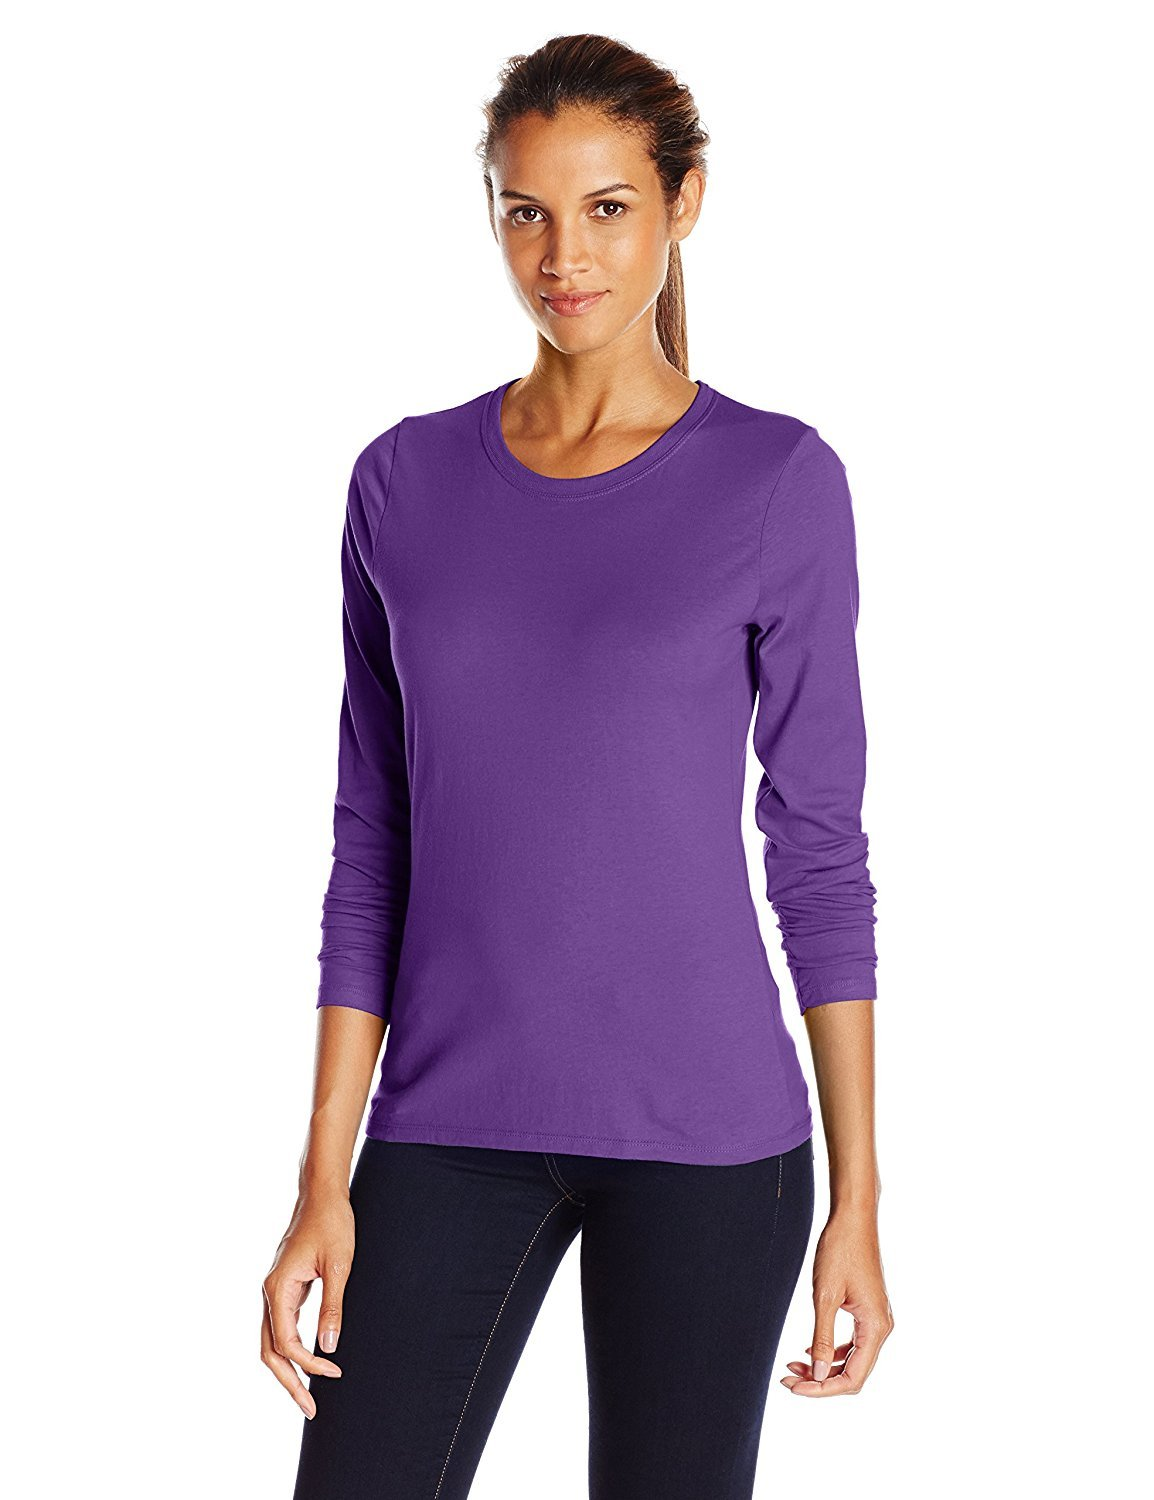 Hanes Women's Long-Sleeve Crewneck T-Shirt_Violet Splendor_Medium_Violet Splendor_Medium